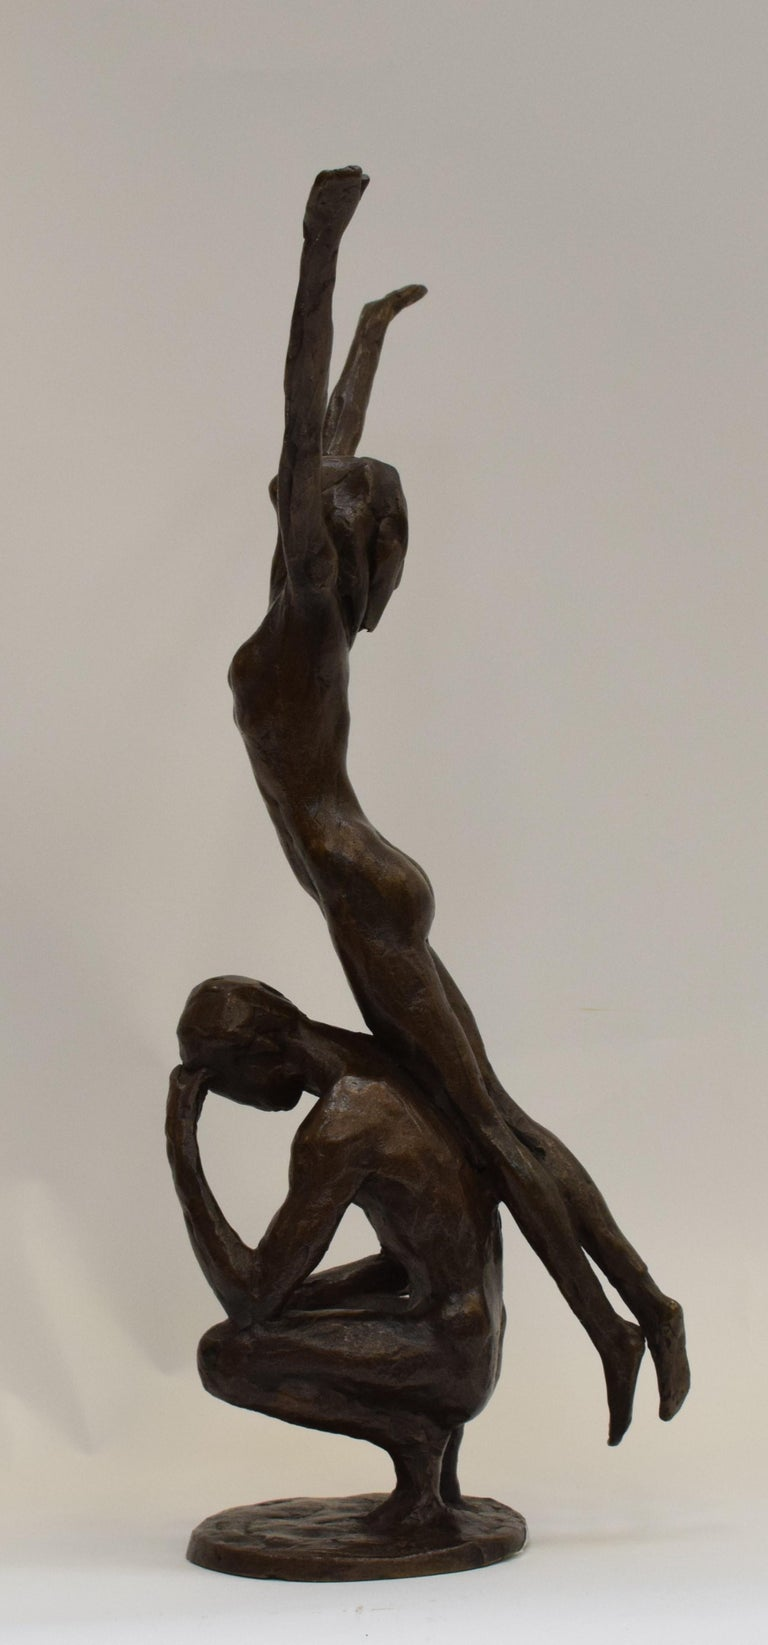 Korstiaan (Kees) Verkade (Haarlem, October 12, 1941) is a Dutch visual artist, and well-known in Europa. He makes sculptures and draws. Verkade was born in Haarlem into a manufacturer family. After drawing and painting lessons with Gerrit van 't